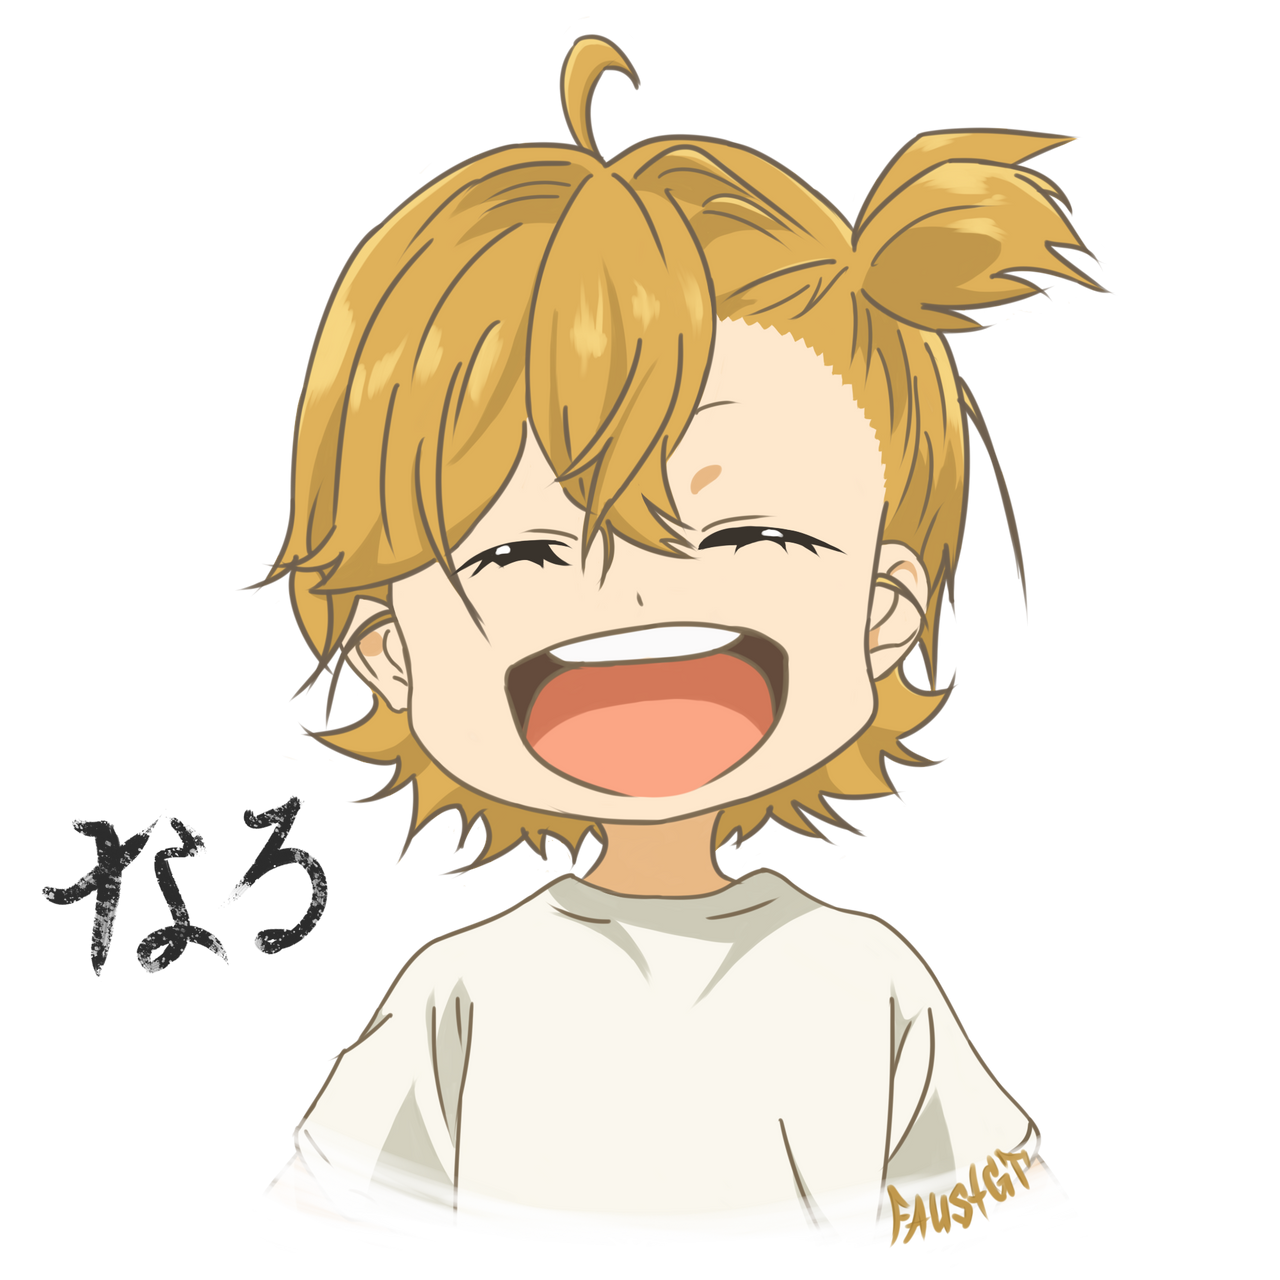 Naru Kotoishi [Barakamon] Naru_kotoishi___barakamon_by_faustgt-d8ill1k